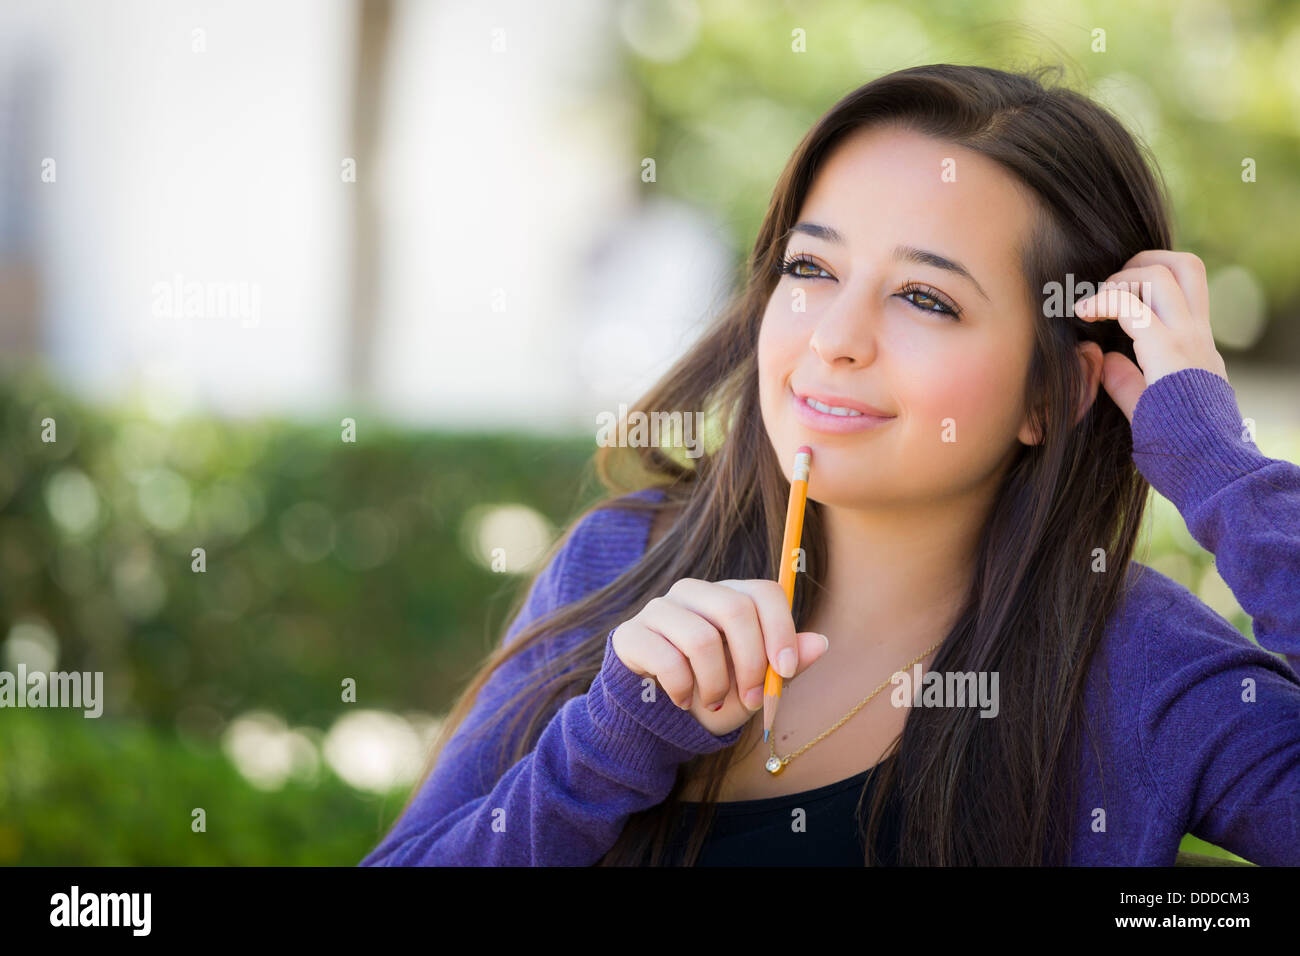 Attractive Pensive Mixed Race Female Student with Pencil Sitting on Campus Bench. - Stock Image